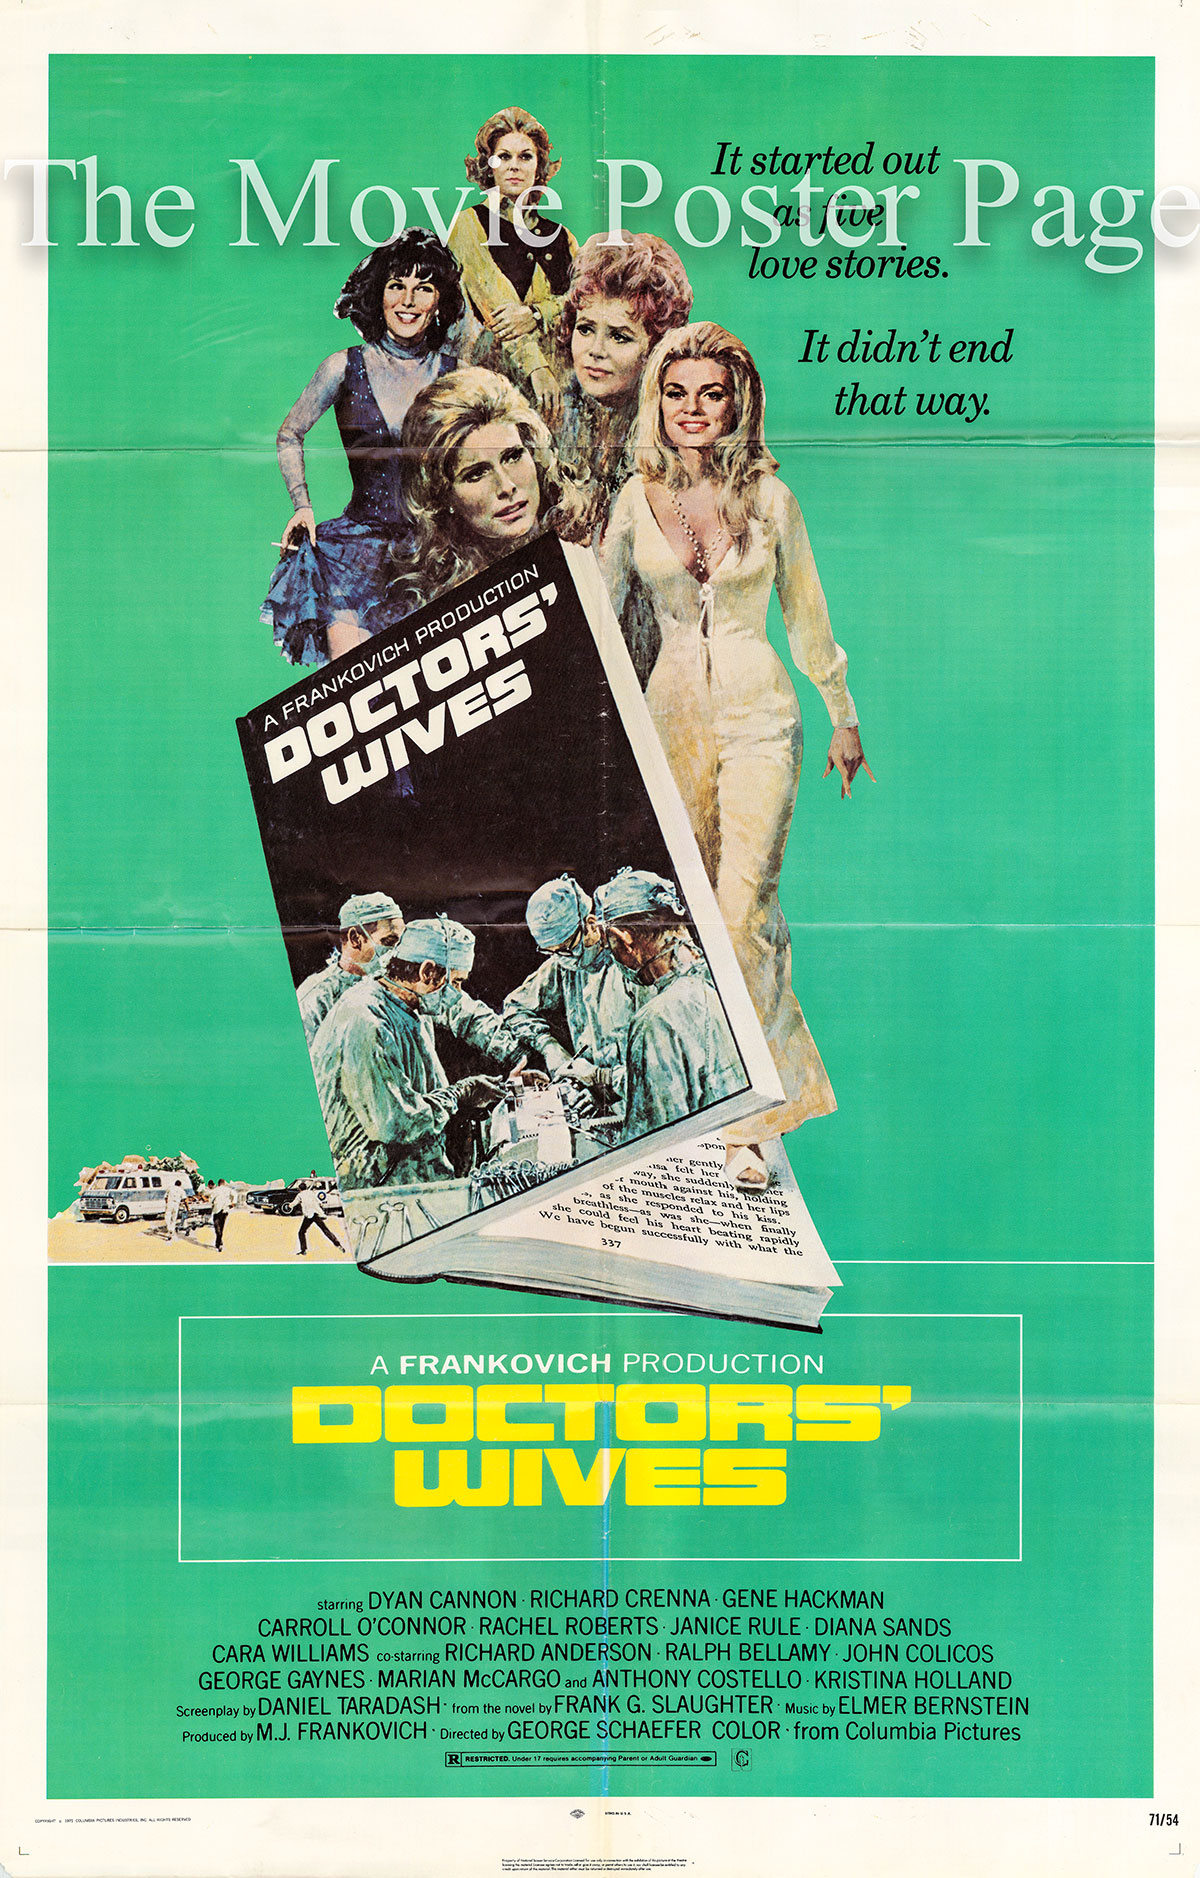 Pictured is a US promotional poster for the 1971 George Schaefer film Doctors Wives starring Dyan Cannon as Lorrie Dellman.